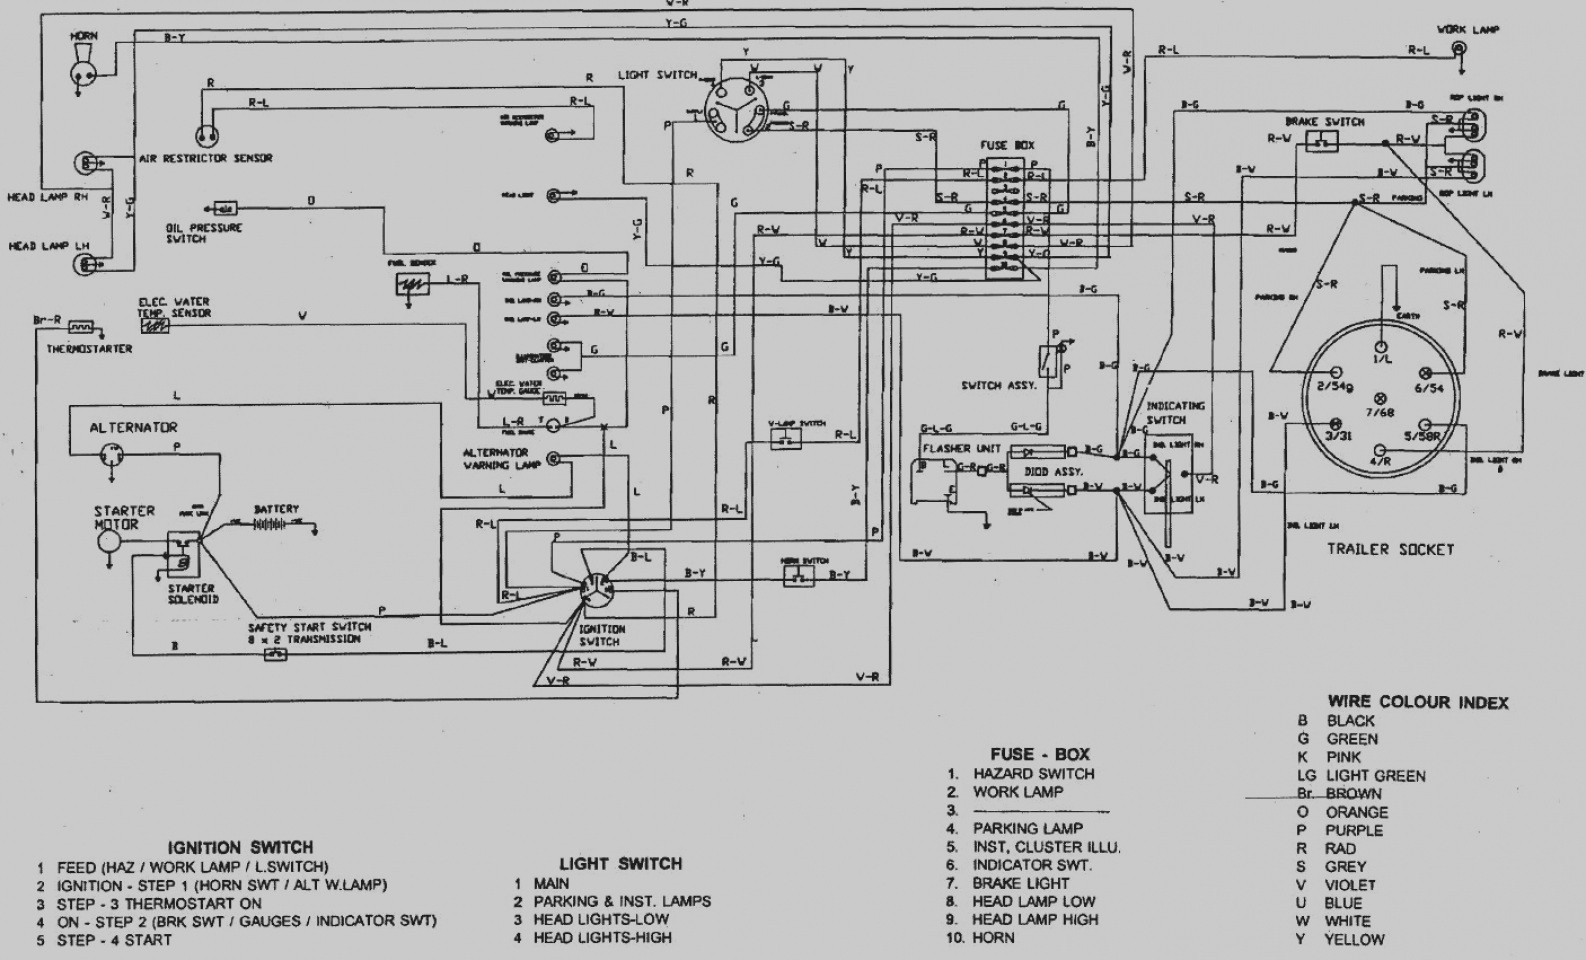 John Deere 210 Wiring Diagram Electrical Schematics 316 Lawn Tractor L120 Diagrams U2022 Pto